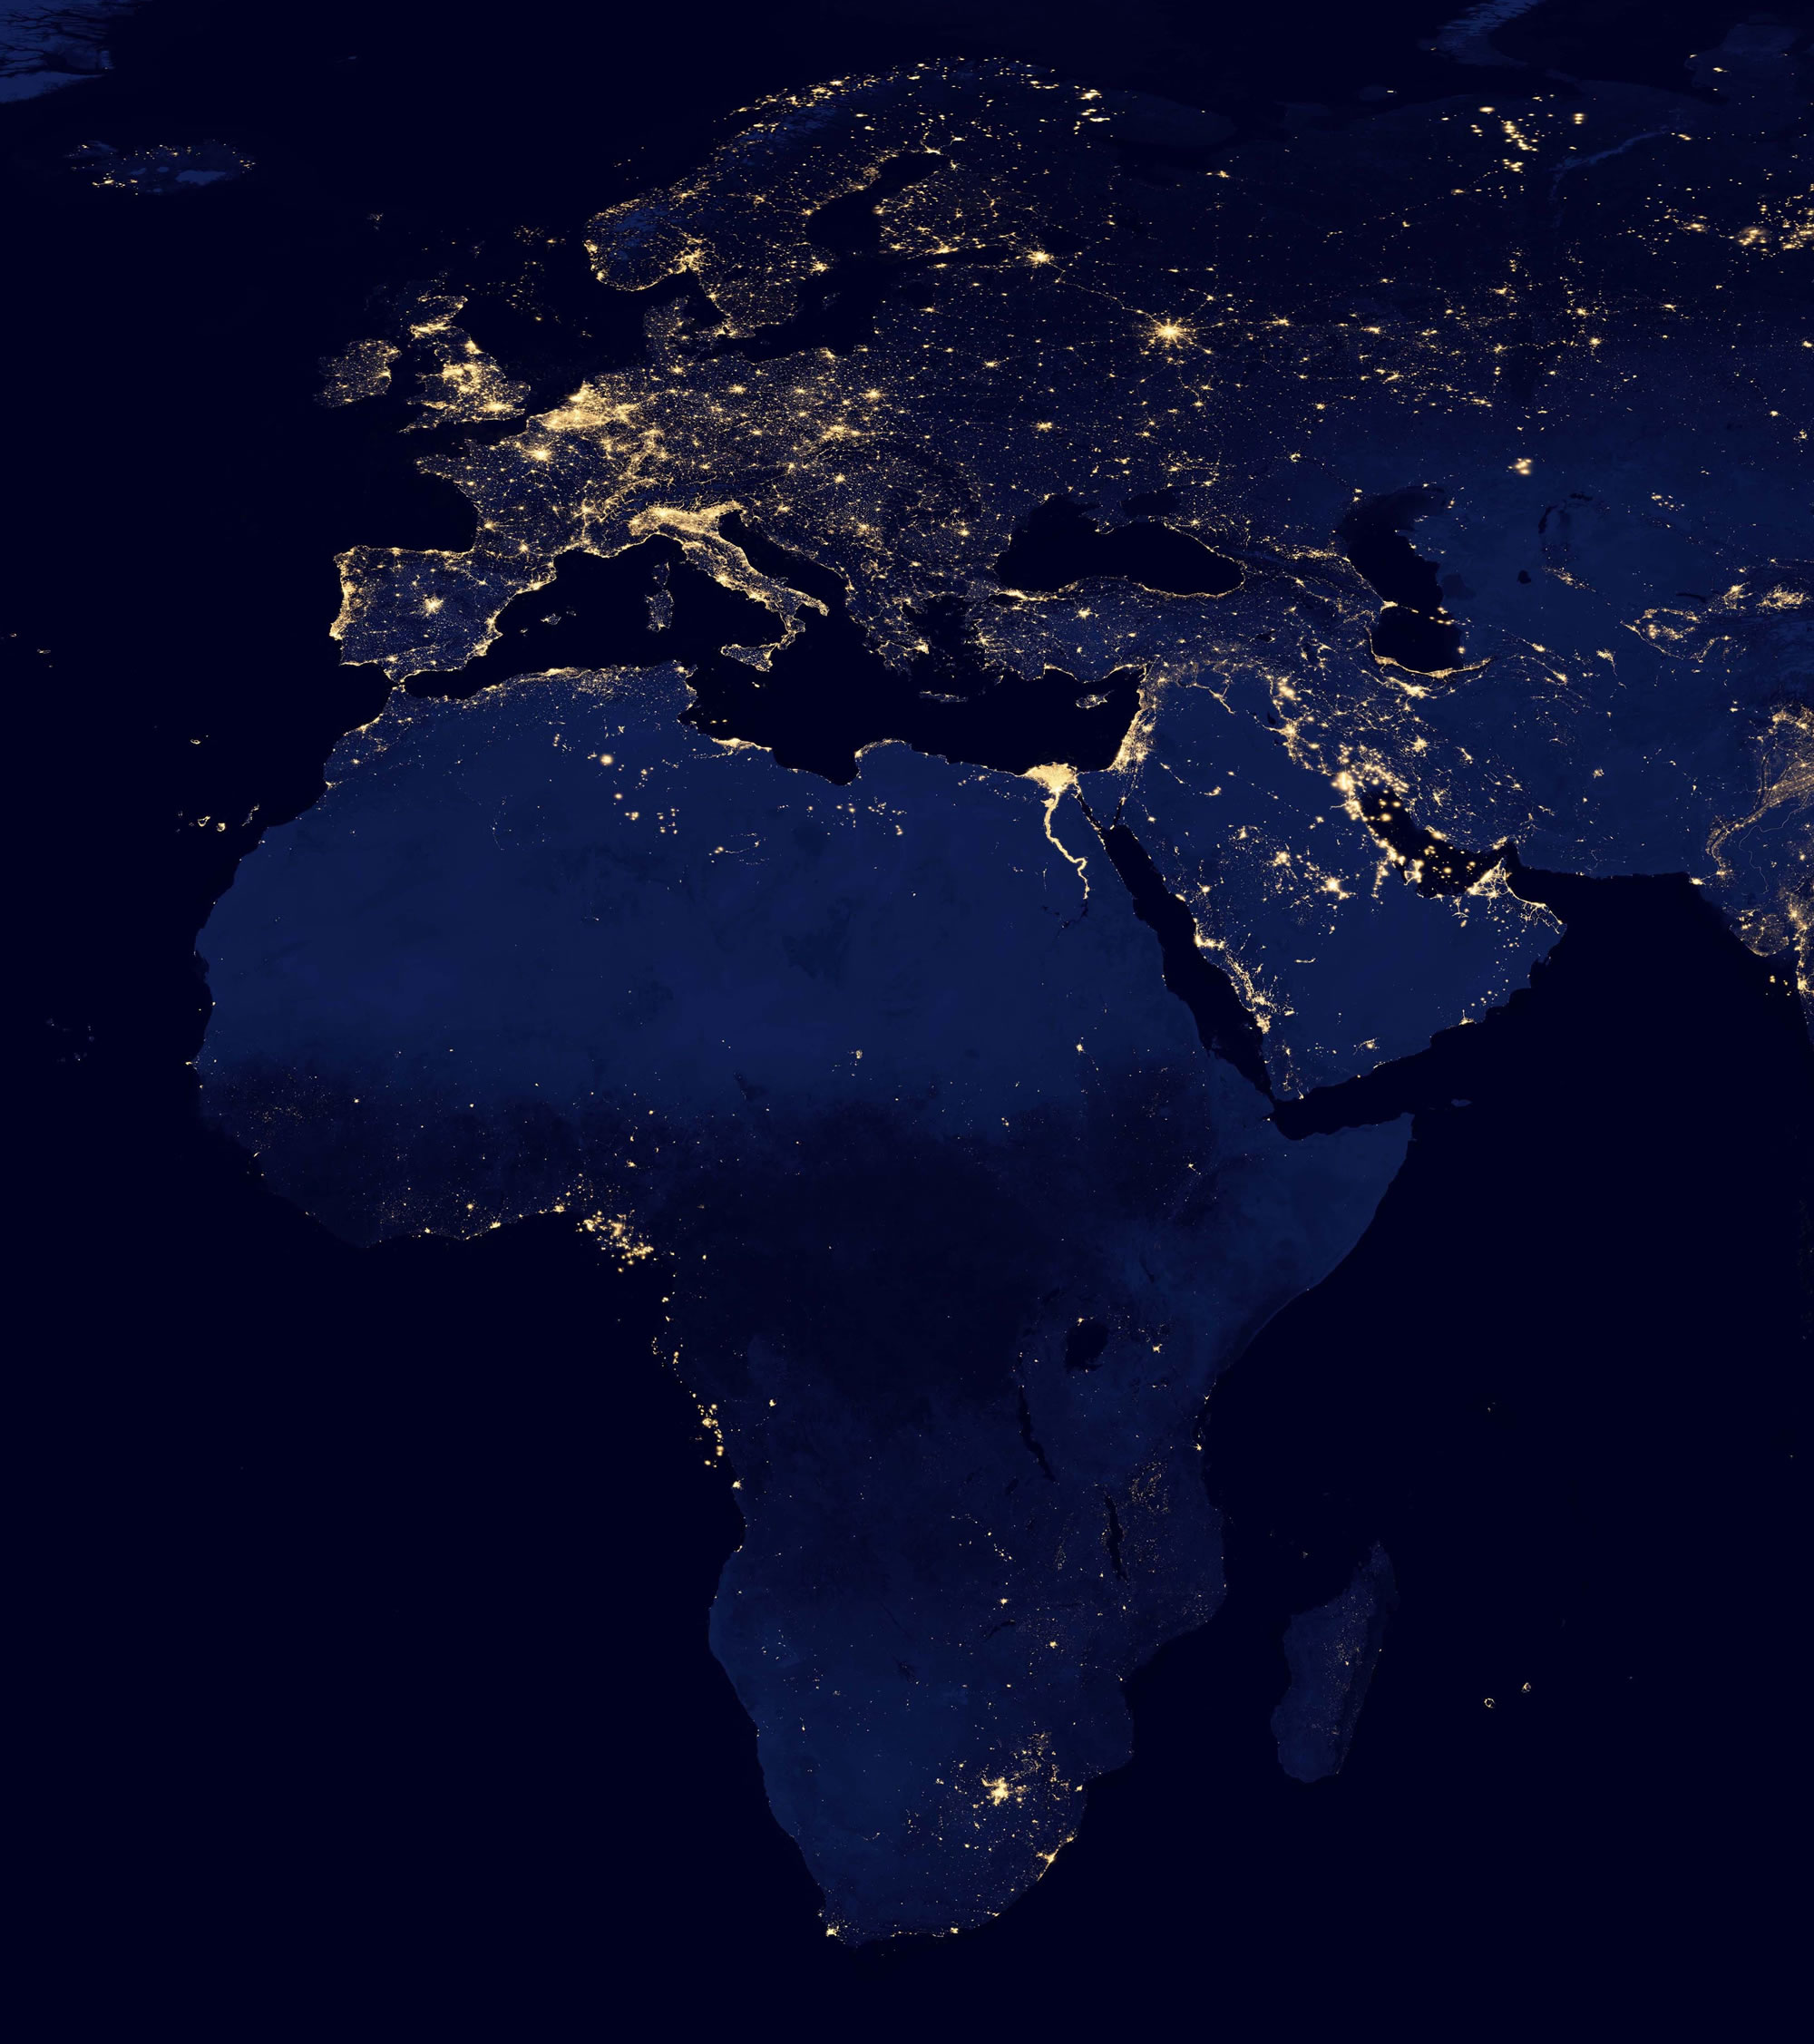 Night satellite photos earth us europe asia world europe and africa at night gumiabroncs Choice Image